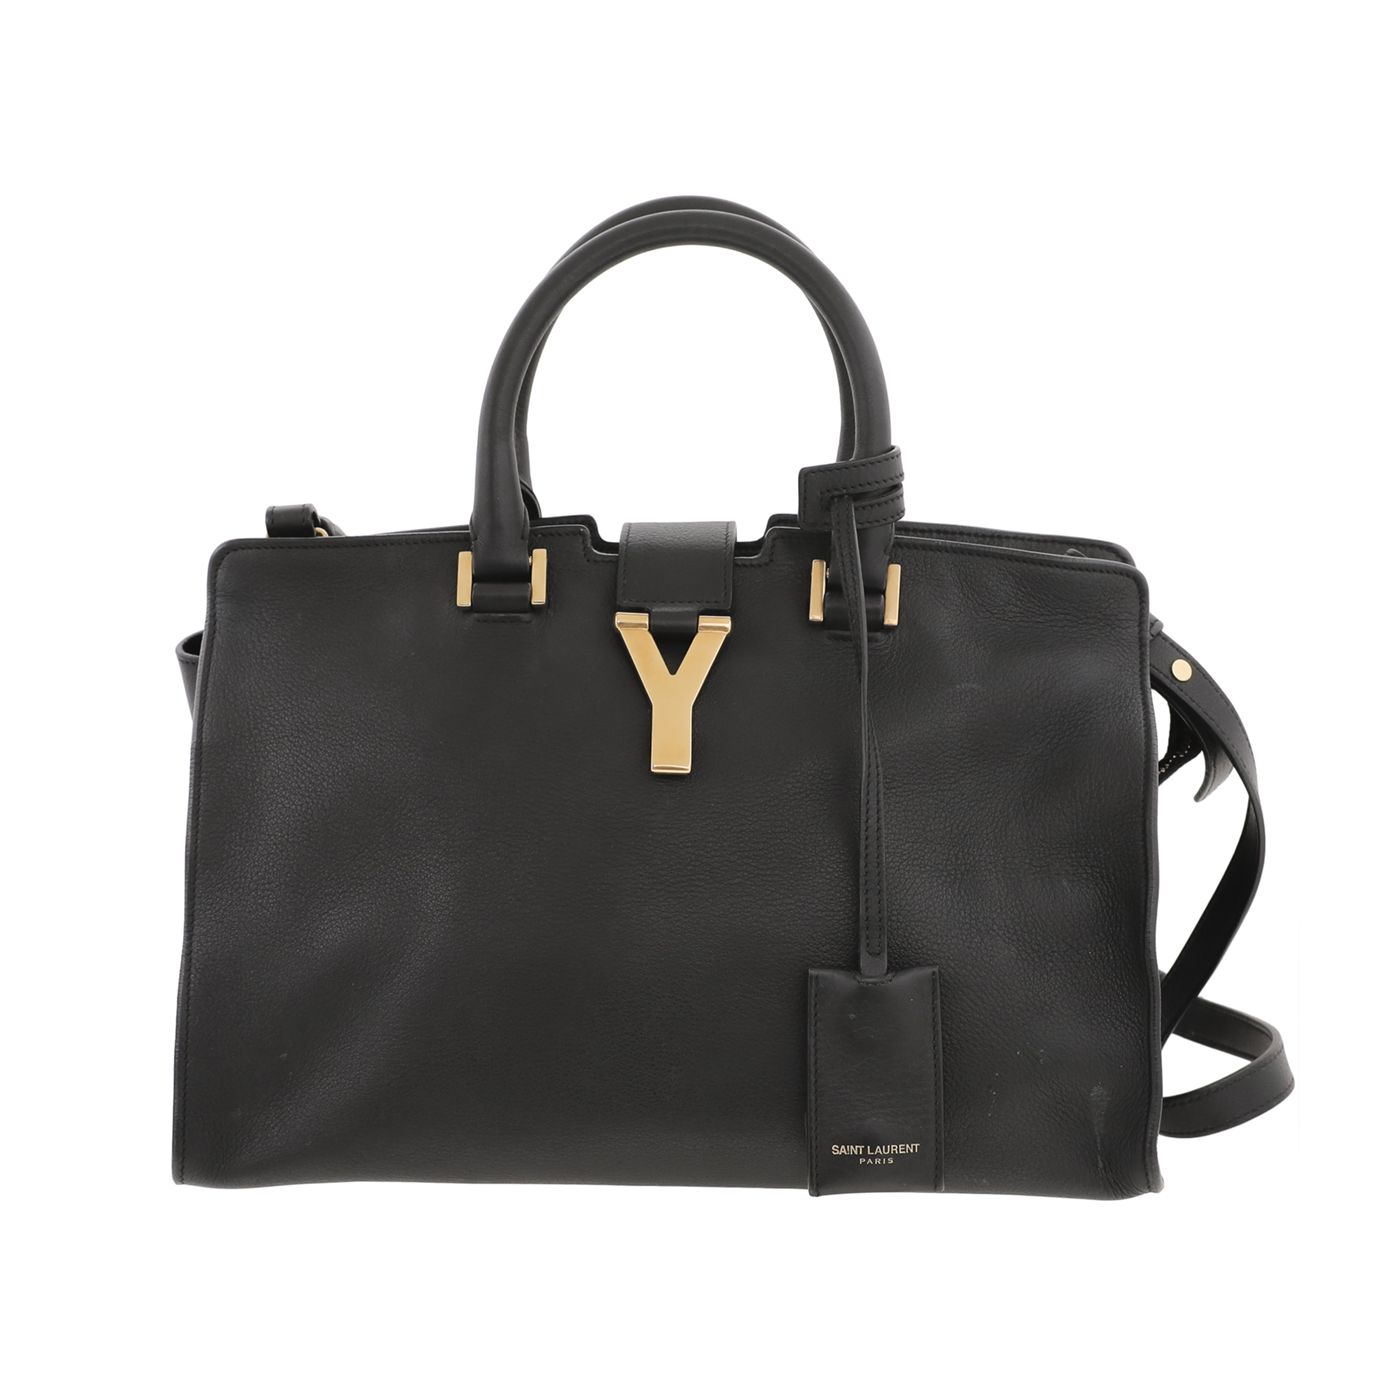 YSL Black Cabas Soft Chyc Small Bag